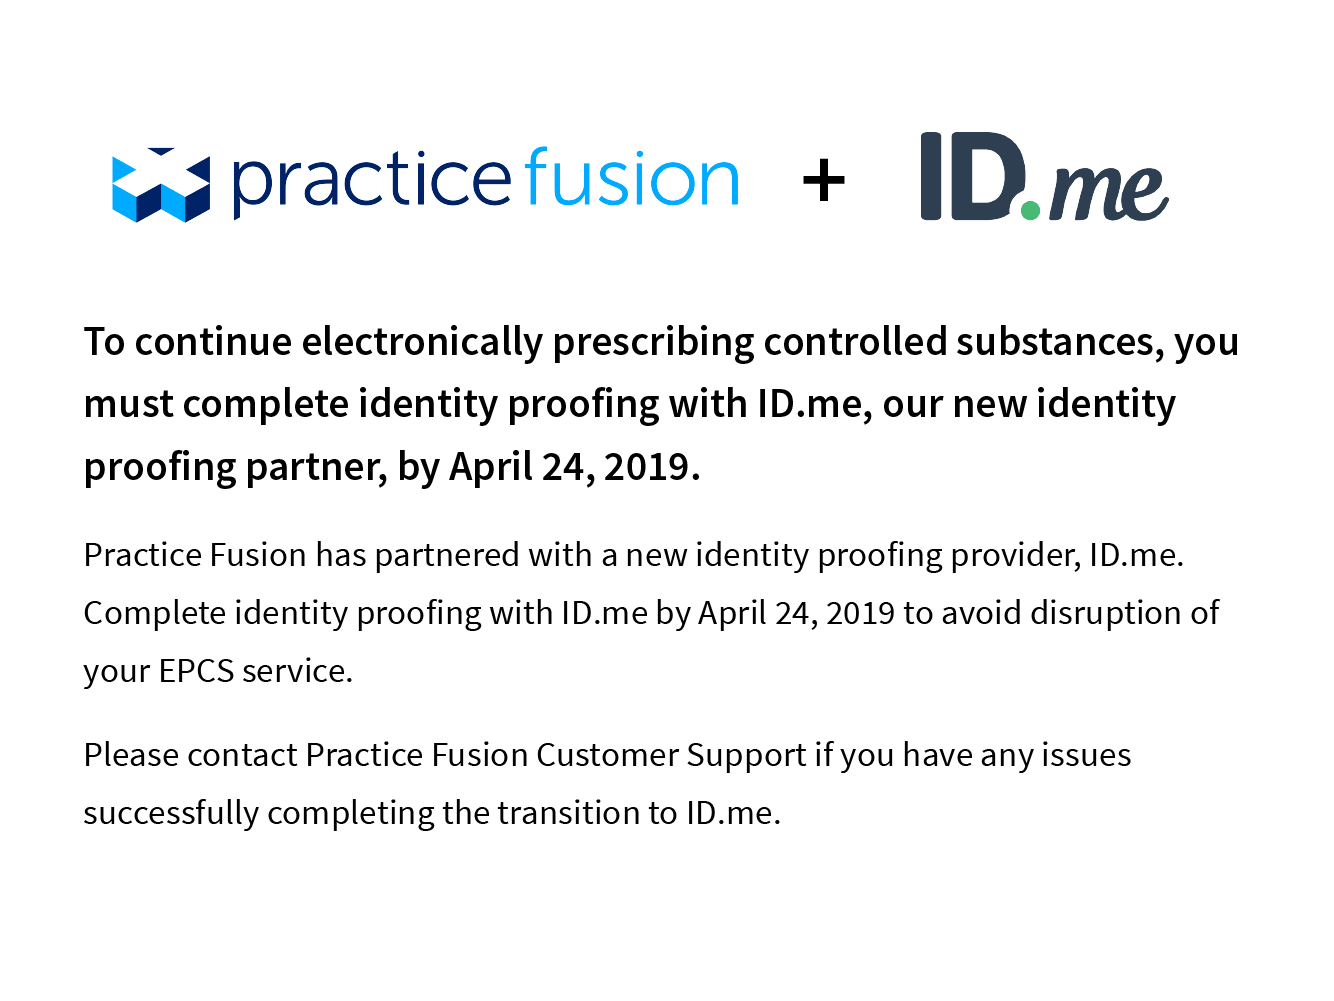 To continue electronically prescribing controlled substances, you must complete identity proofing with ID.me, our new identity proffing partner, by April 24, 2019. Practice Fusion has partnered with a new identity proofing provider, ID.me. Complete identity proofing with ID.me by April 24, 2019 to avoid disruption of your EPCS service. Please contact Practice Fusion Customer Support if you have any issues successfully complete the transistion to ID.me.